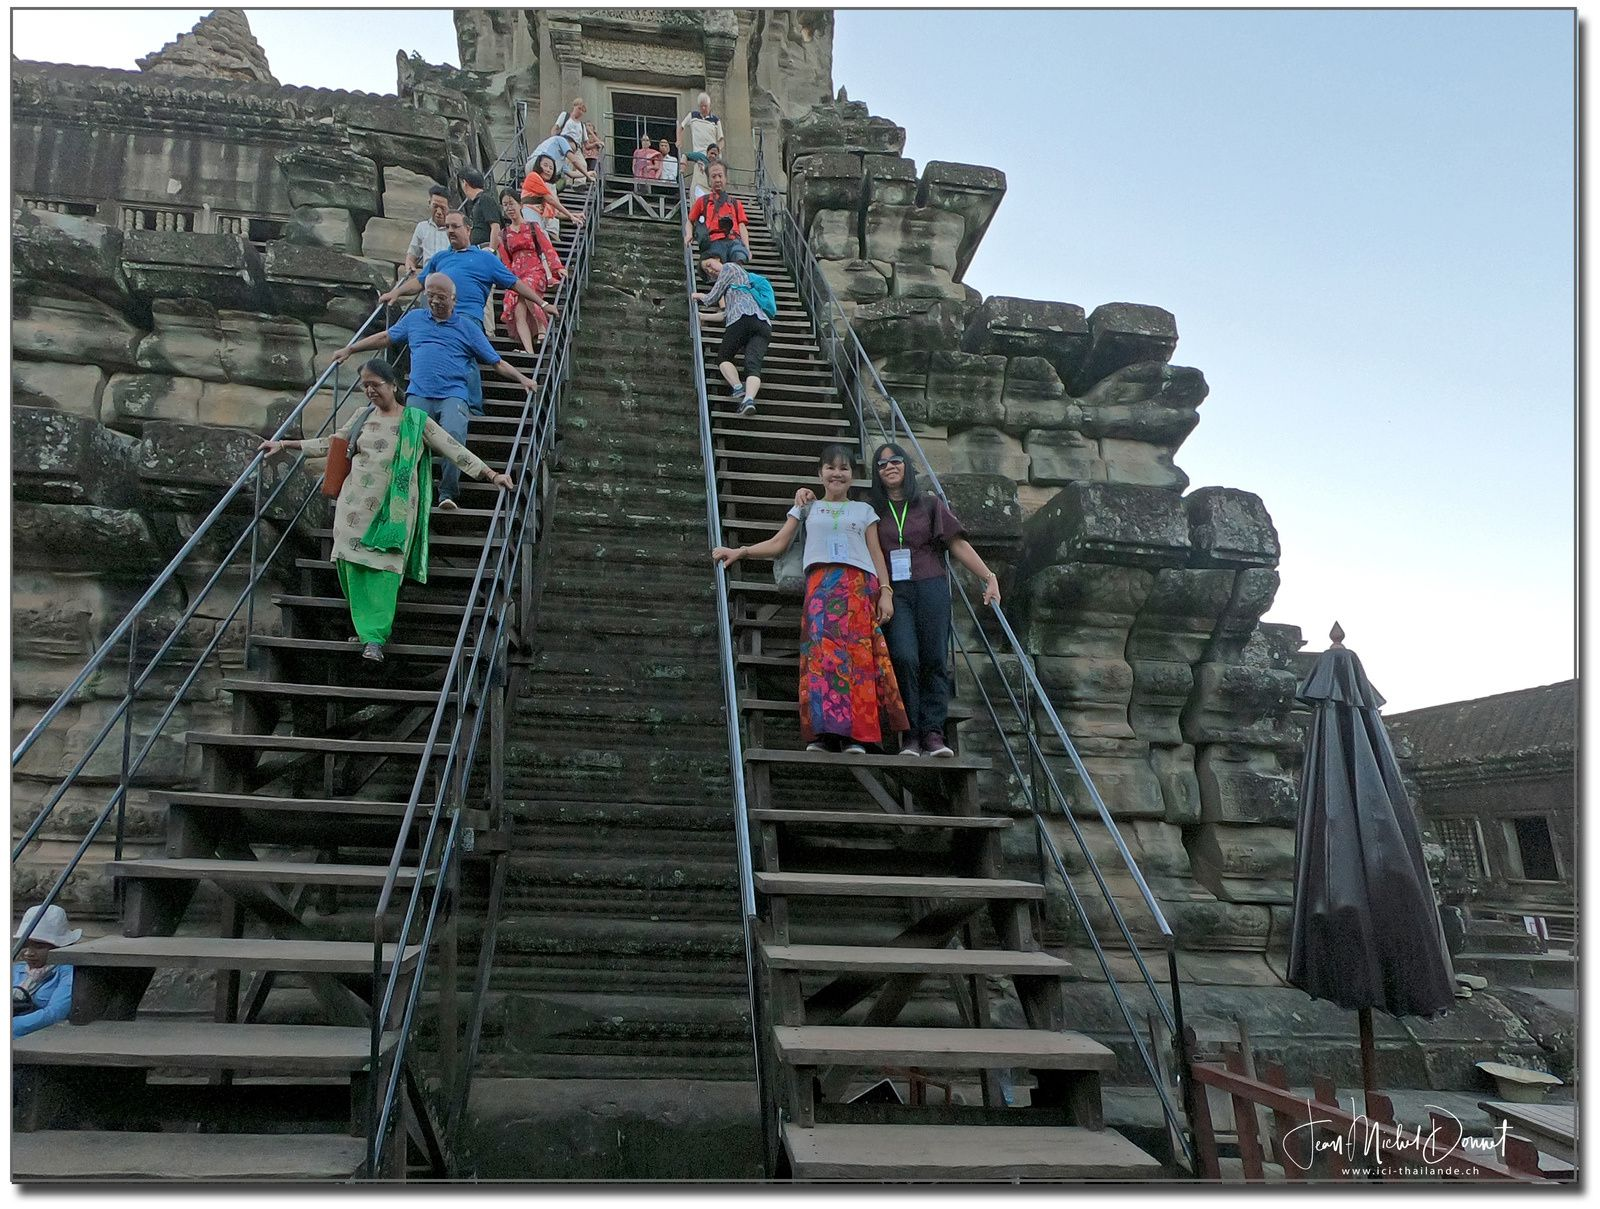 Le site d'Angkor Vat (Cambodge, Siem Reap)